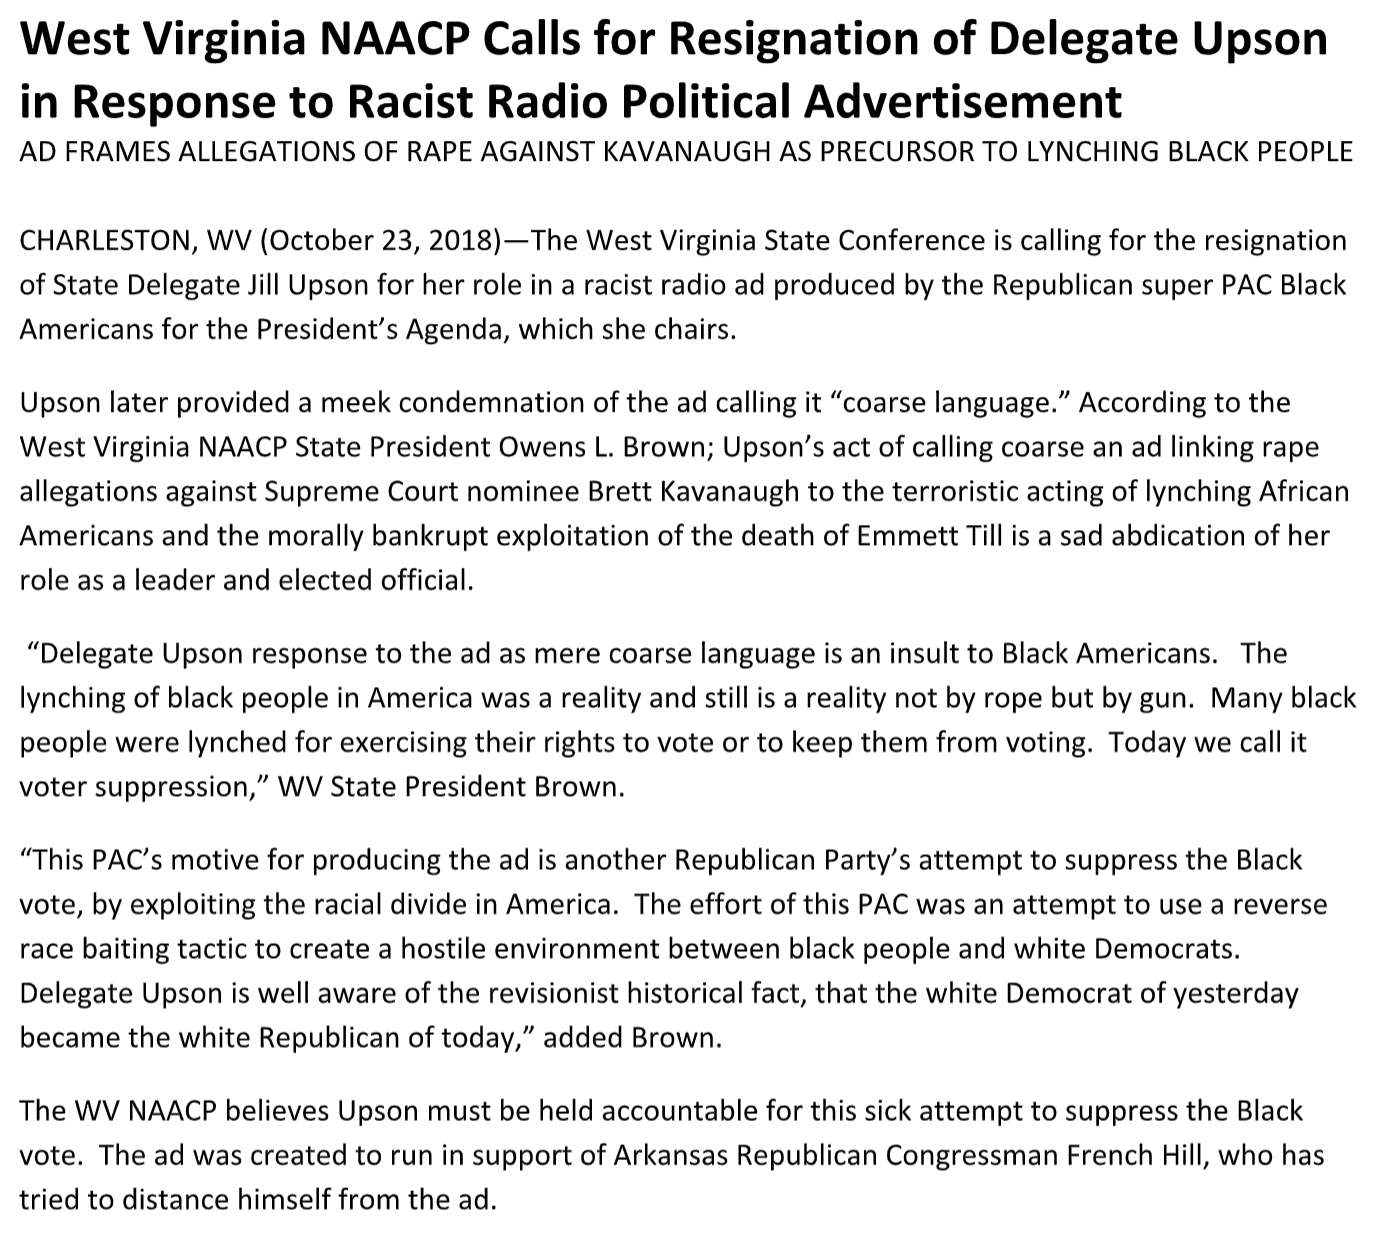 West Virginia NAACP Calls for Resignation of Delegate Upson in Response to Racist Radio Political Advertisement